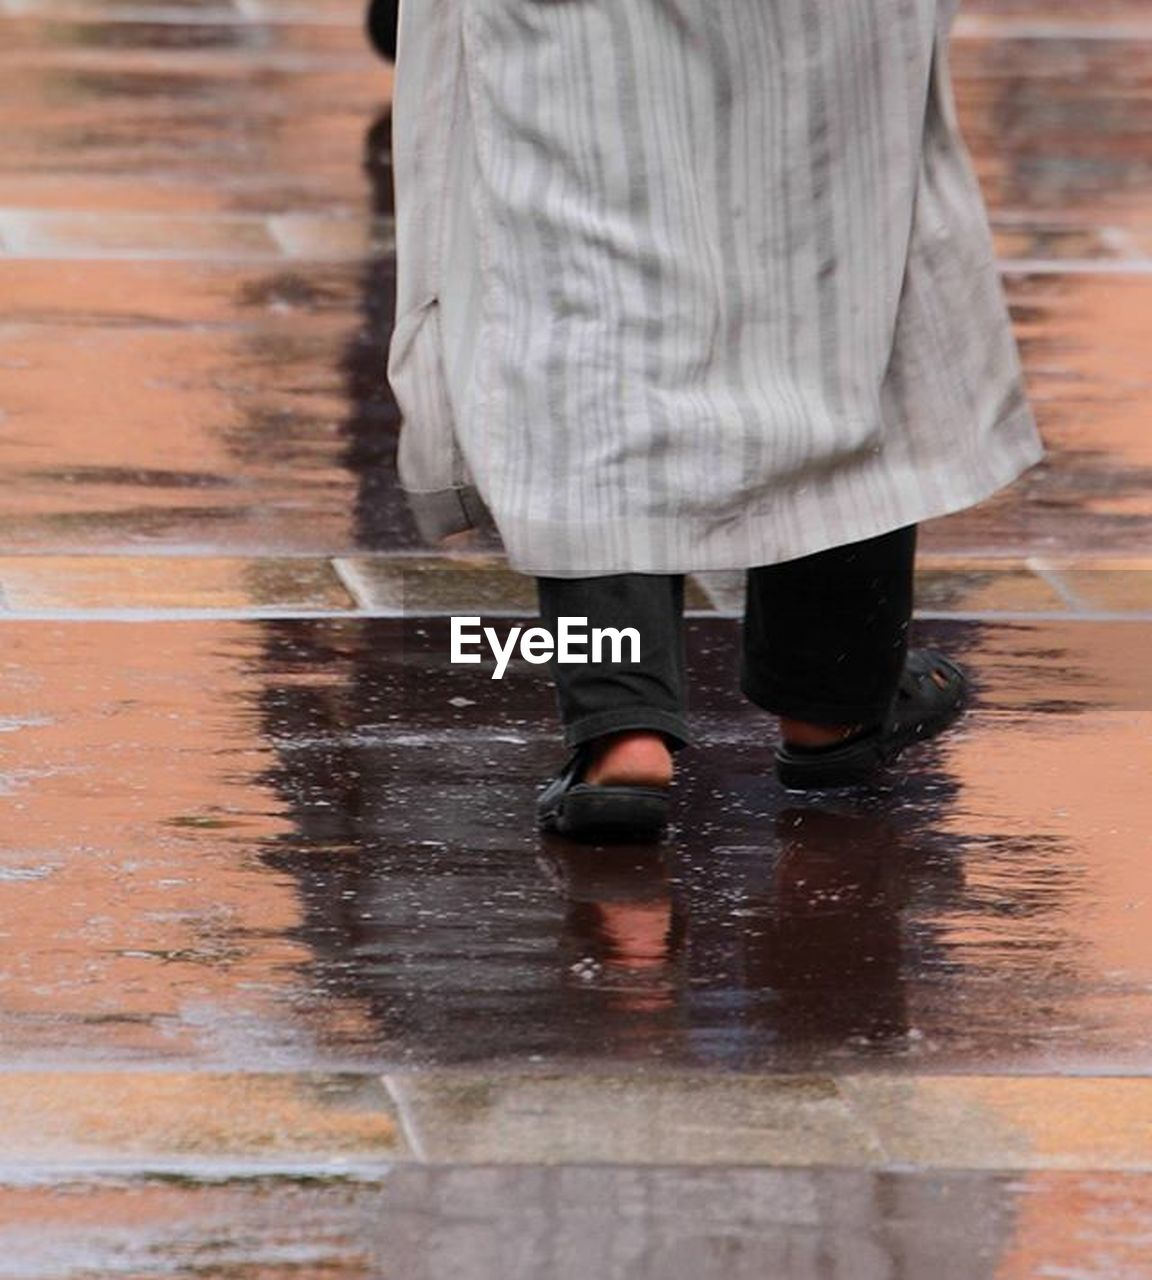 low section, walking, human leg, one person, motion, wet, shoe, human body part, standing, adult, city, body part, rain, day, water, casual clothing, reflection, footpath, outdoors, rainy season